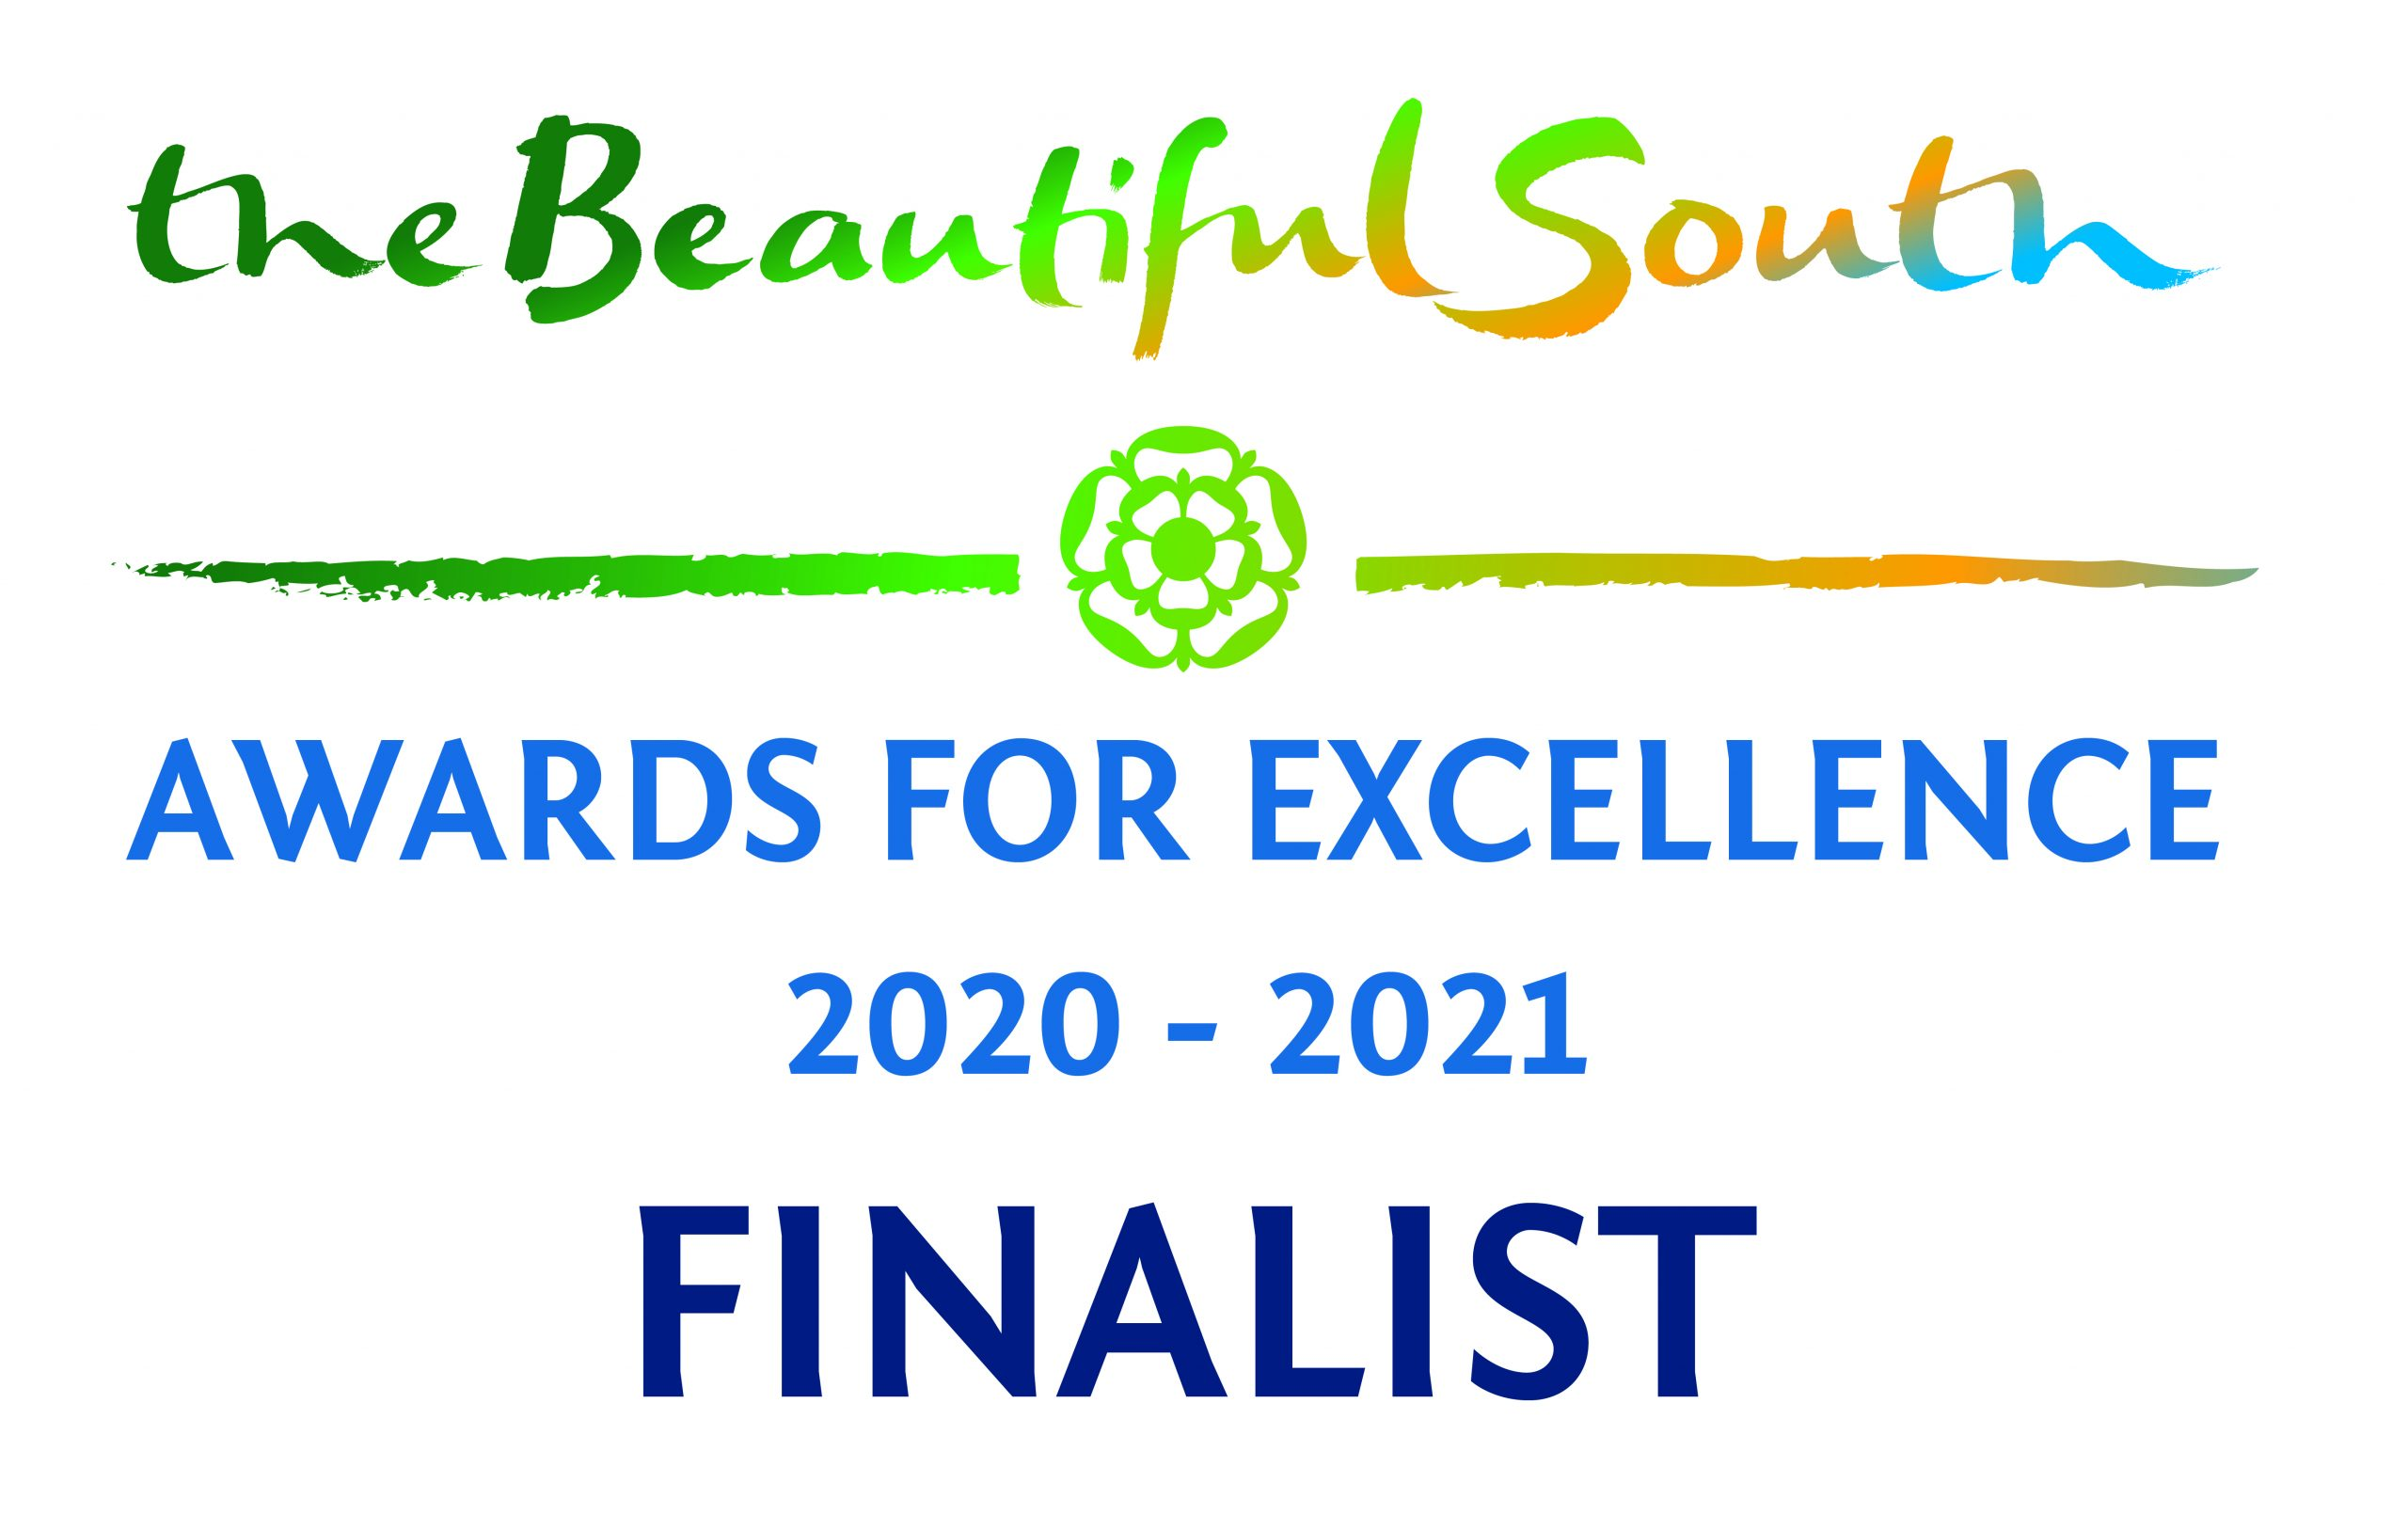 https://thepurefoyarms.co.uk/wp-content/uploads/2021/01/Beautiful-south-awards-scaled.jpg